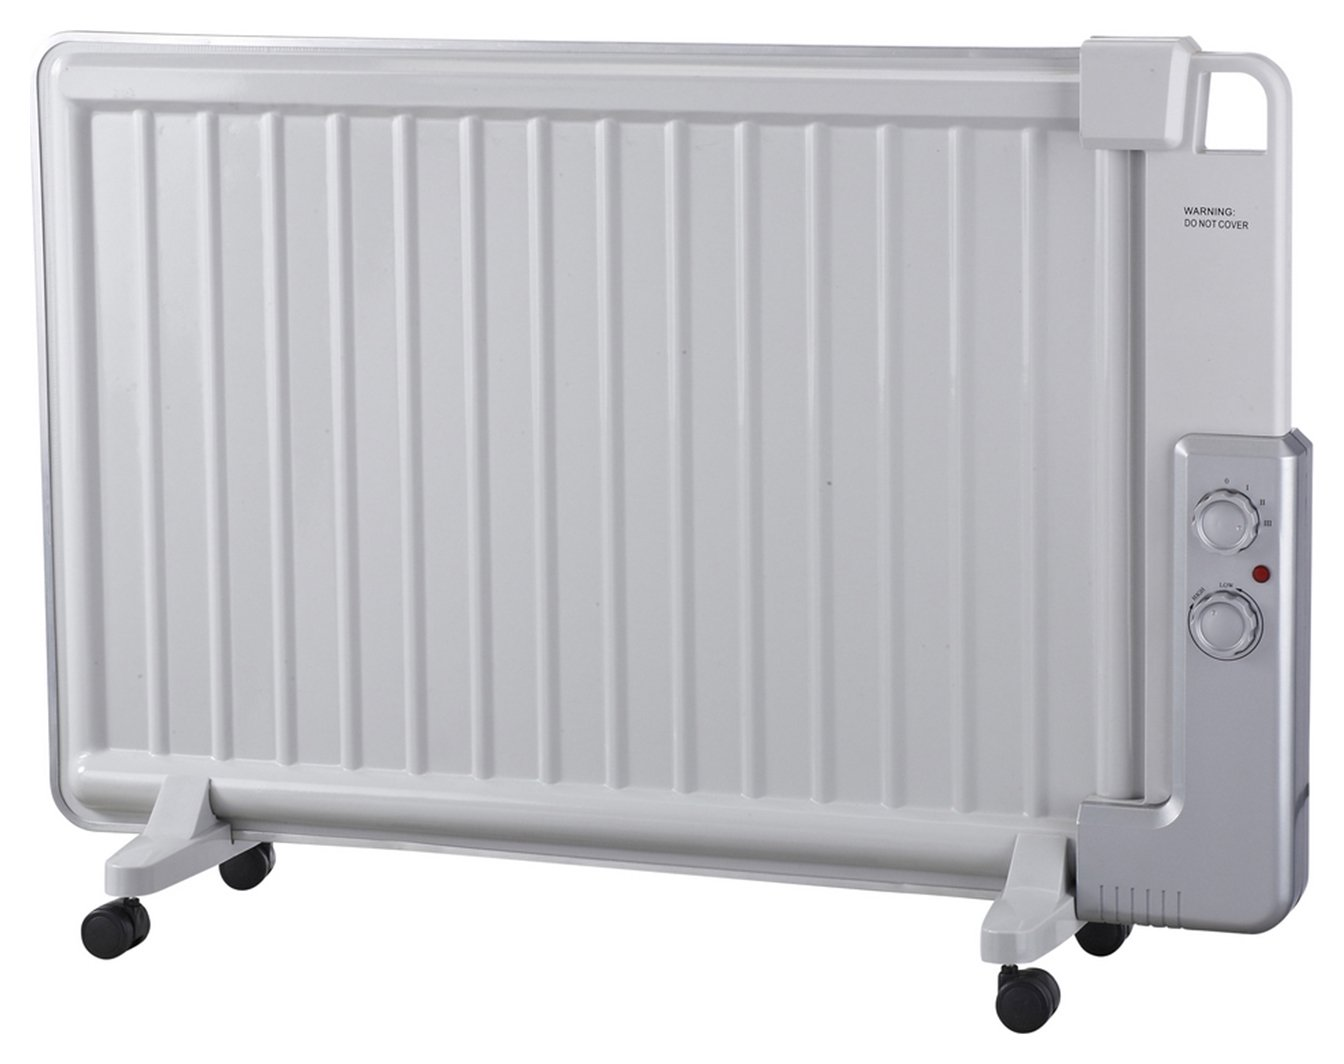 Image of Challenge 0.7kW Oil Filled Panel Heater